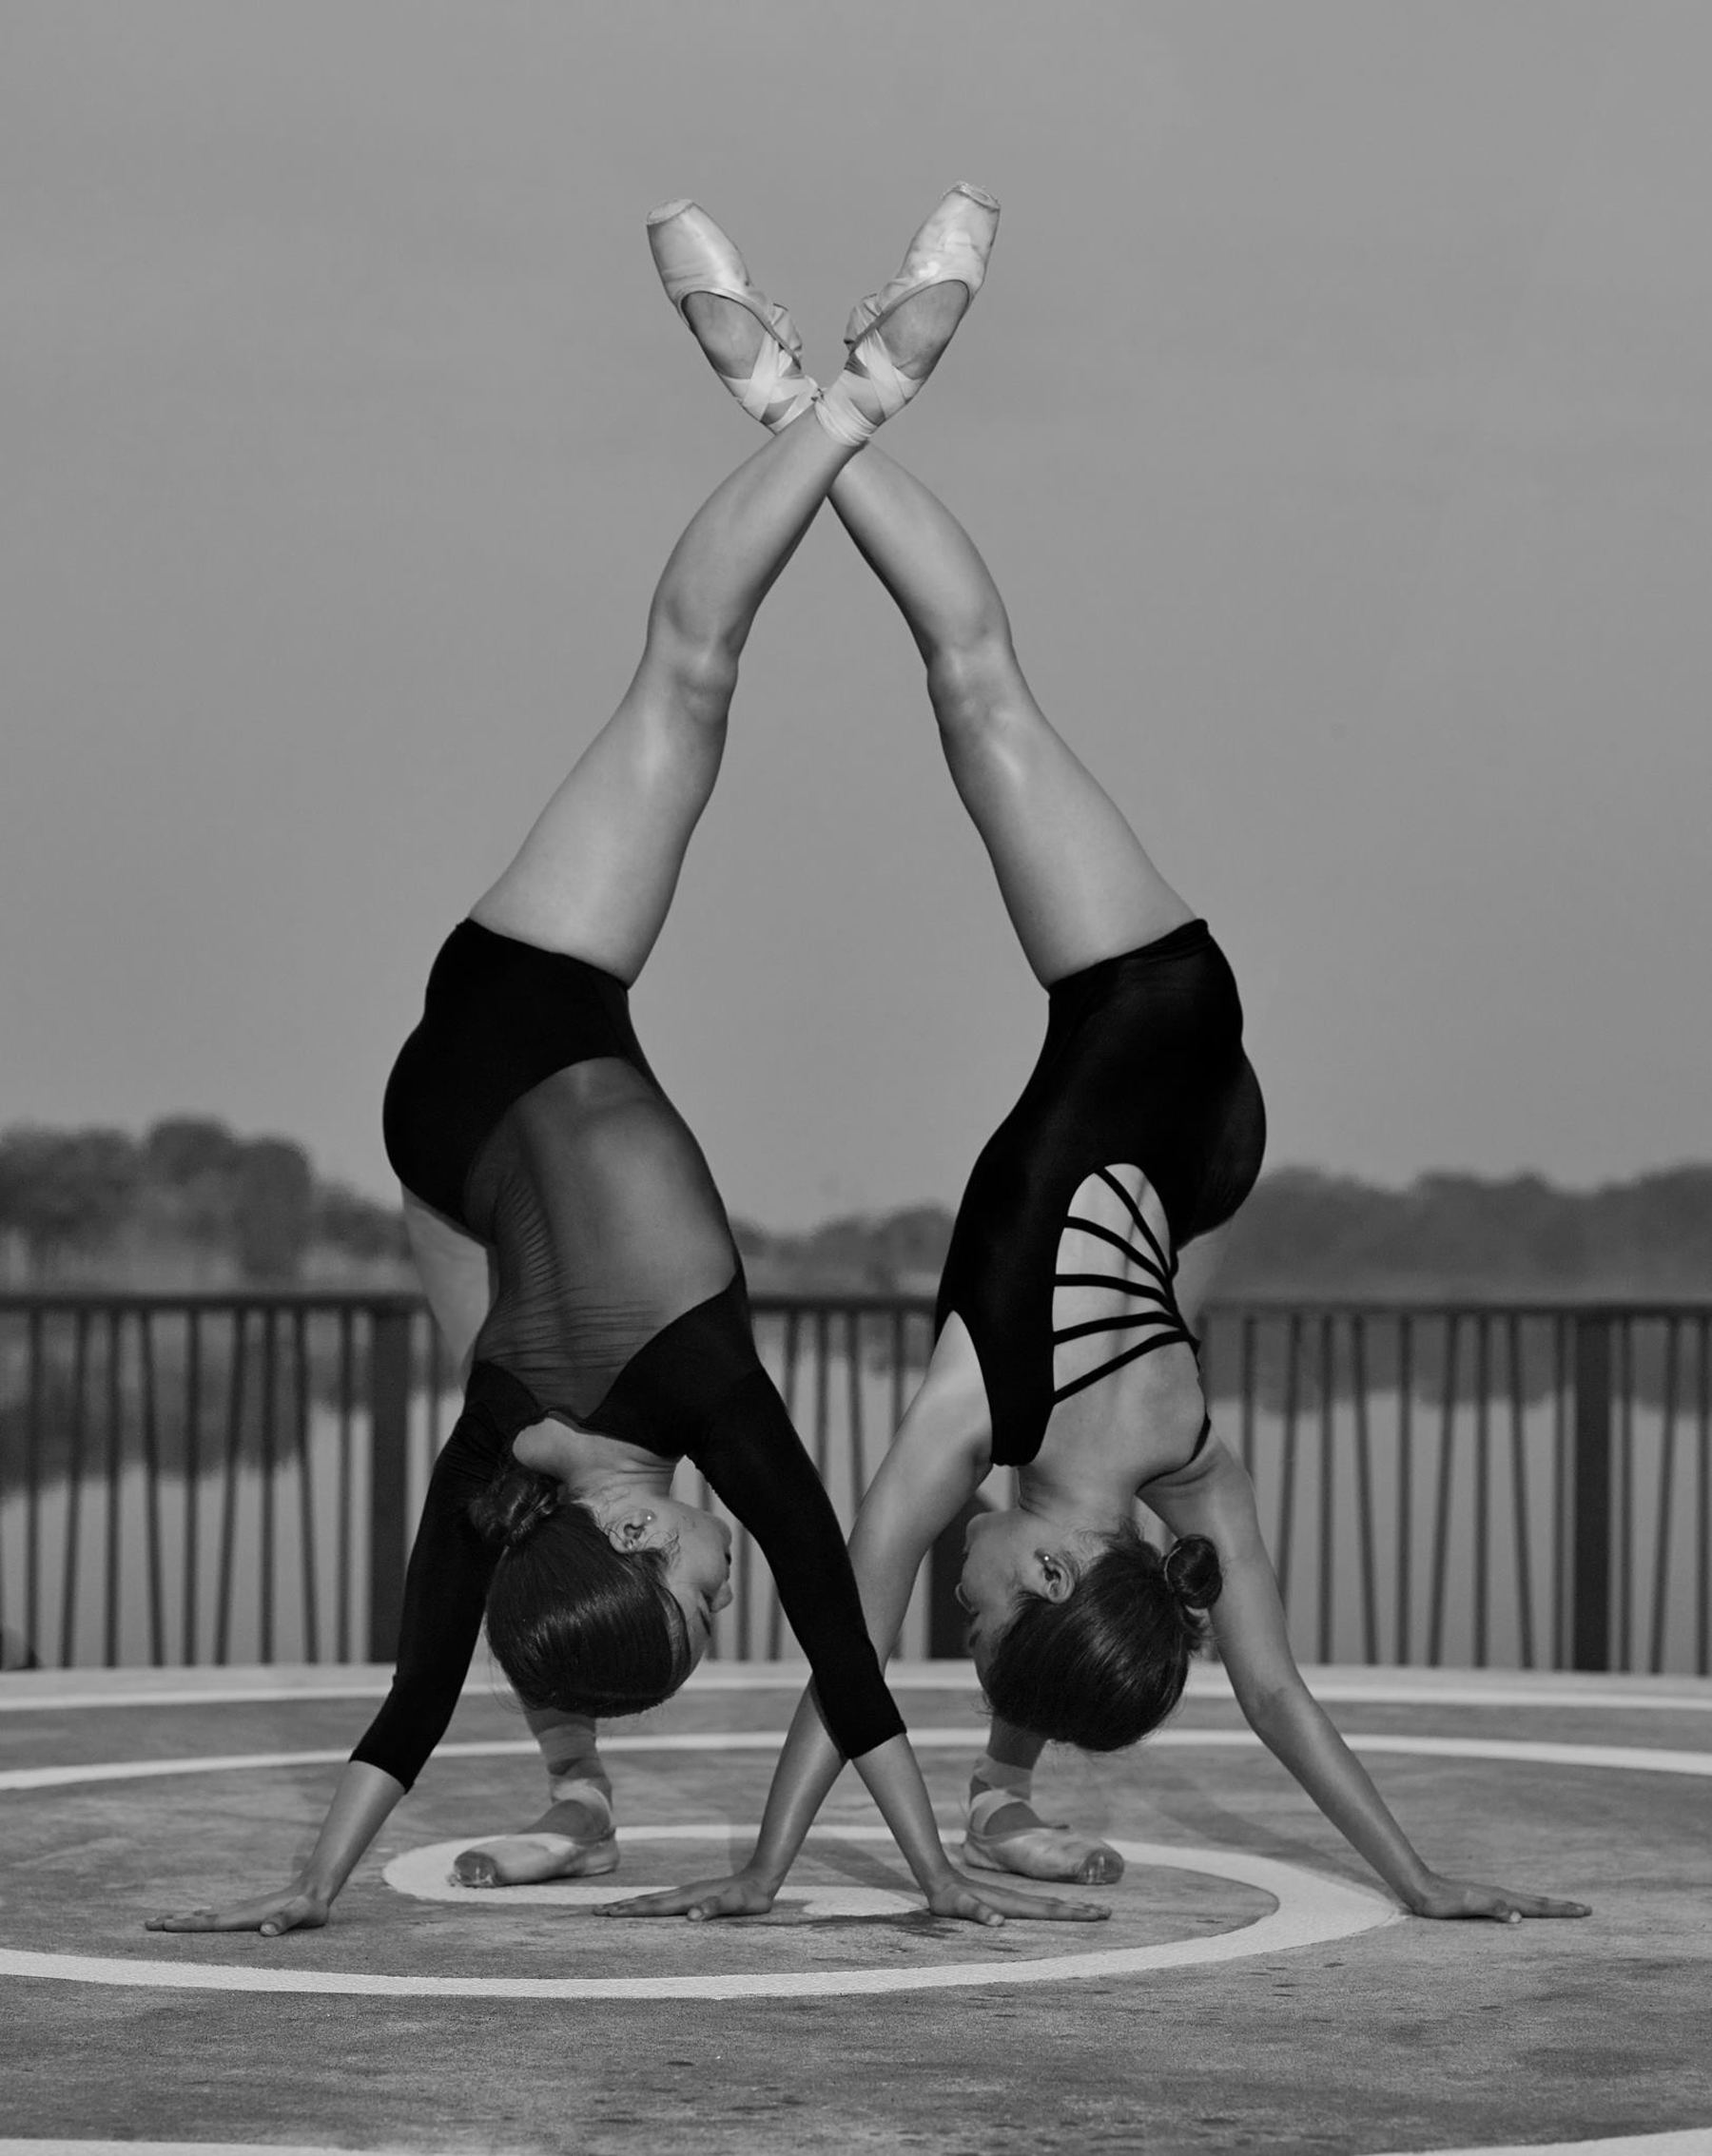 Twinning moment: The Dames sisters in a photo shoot they did for a friend in Singapore. Photo by Arun Al